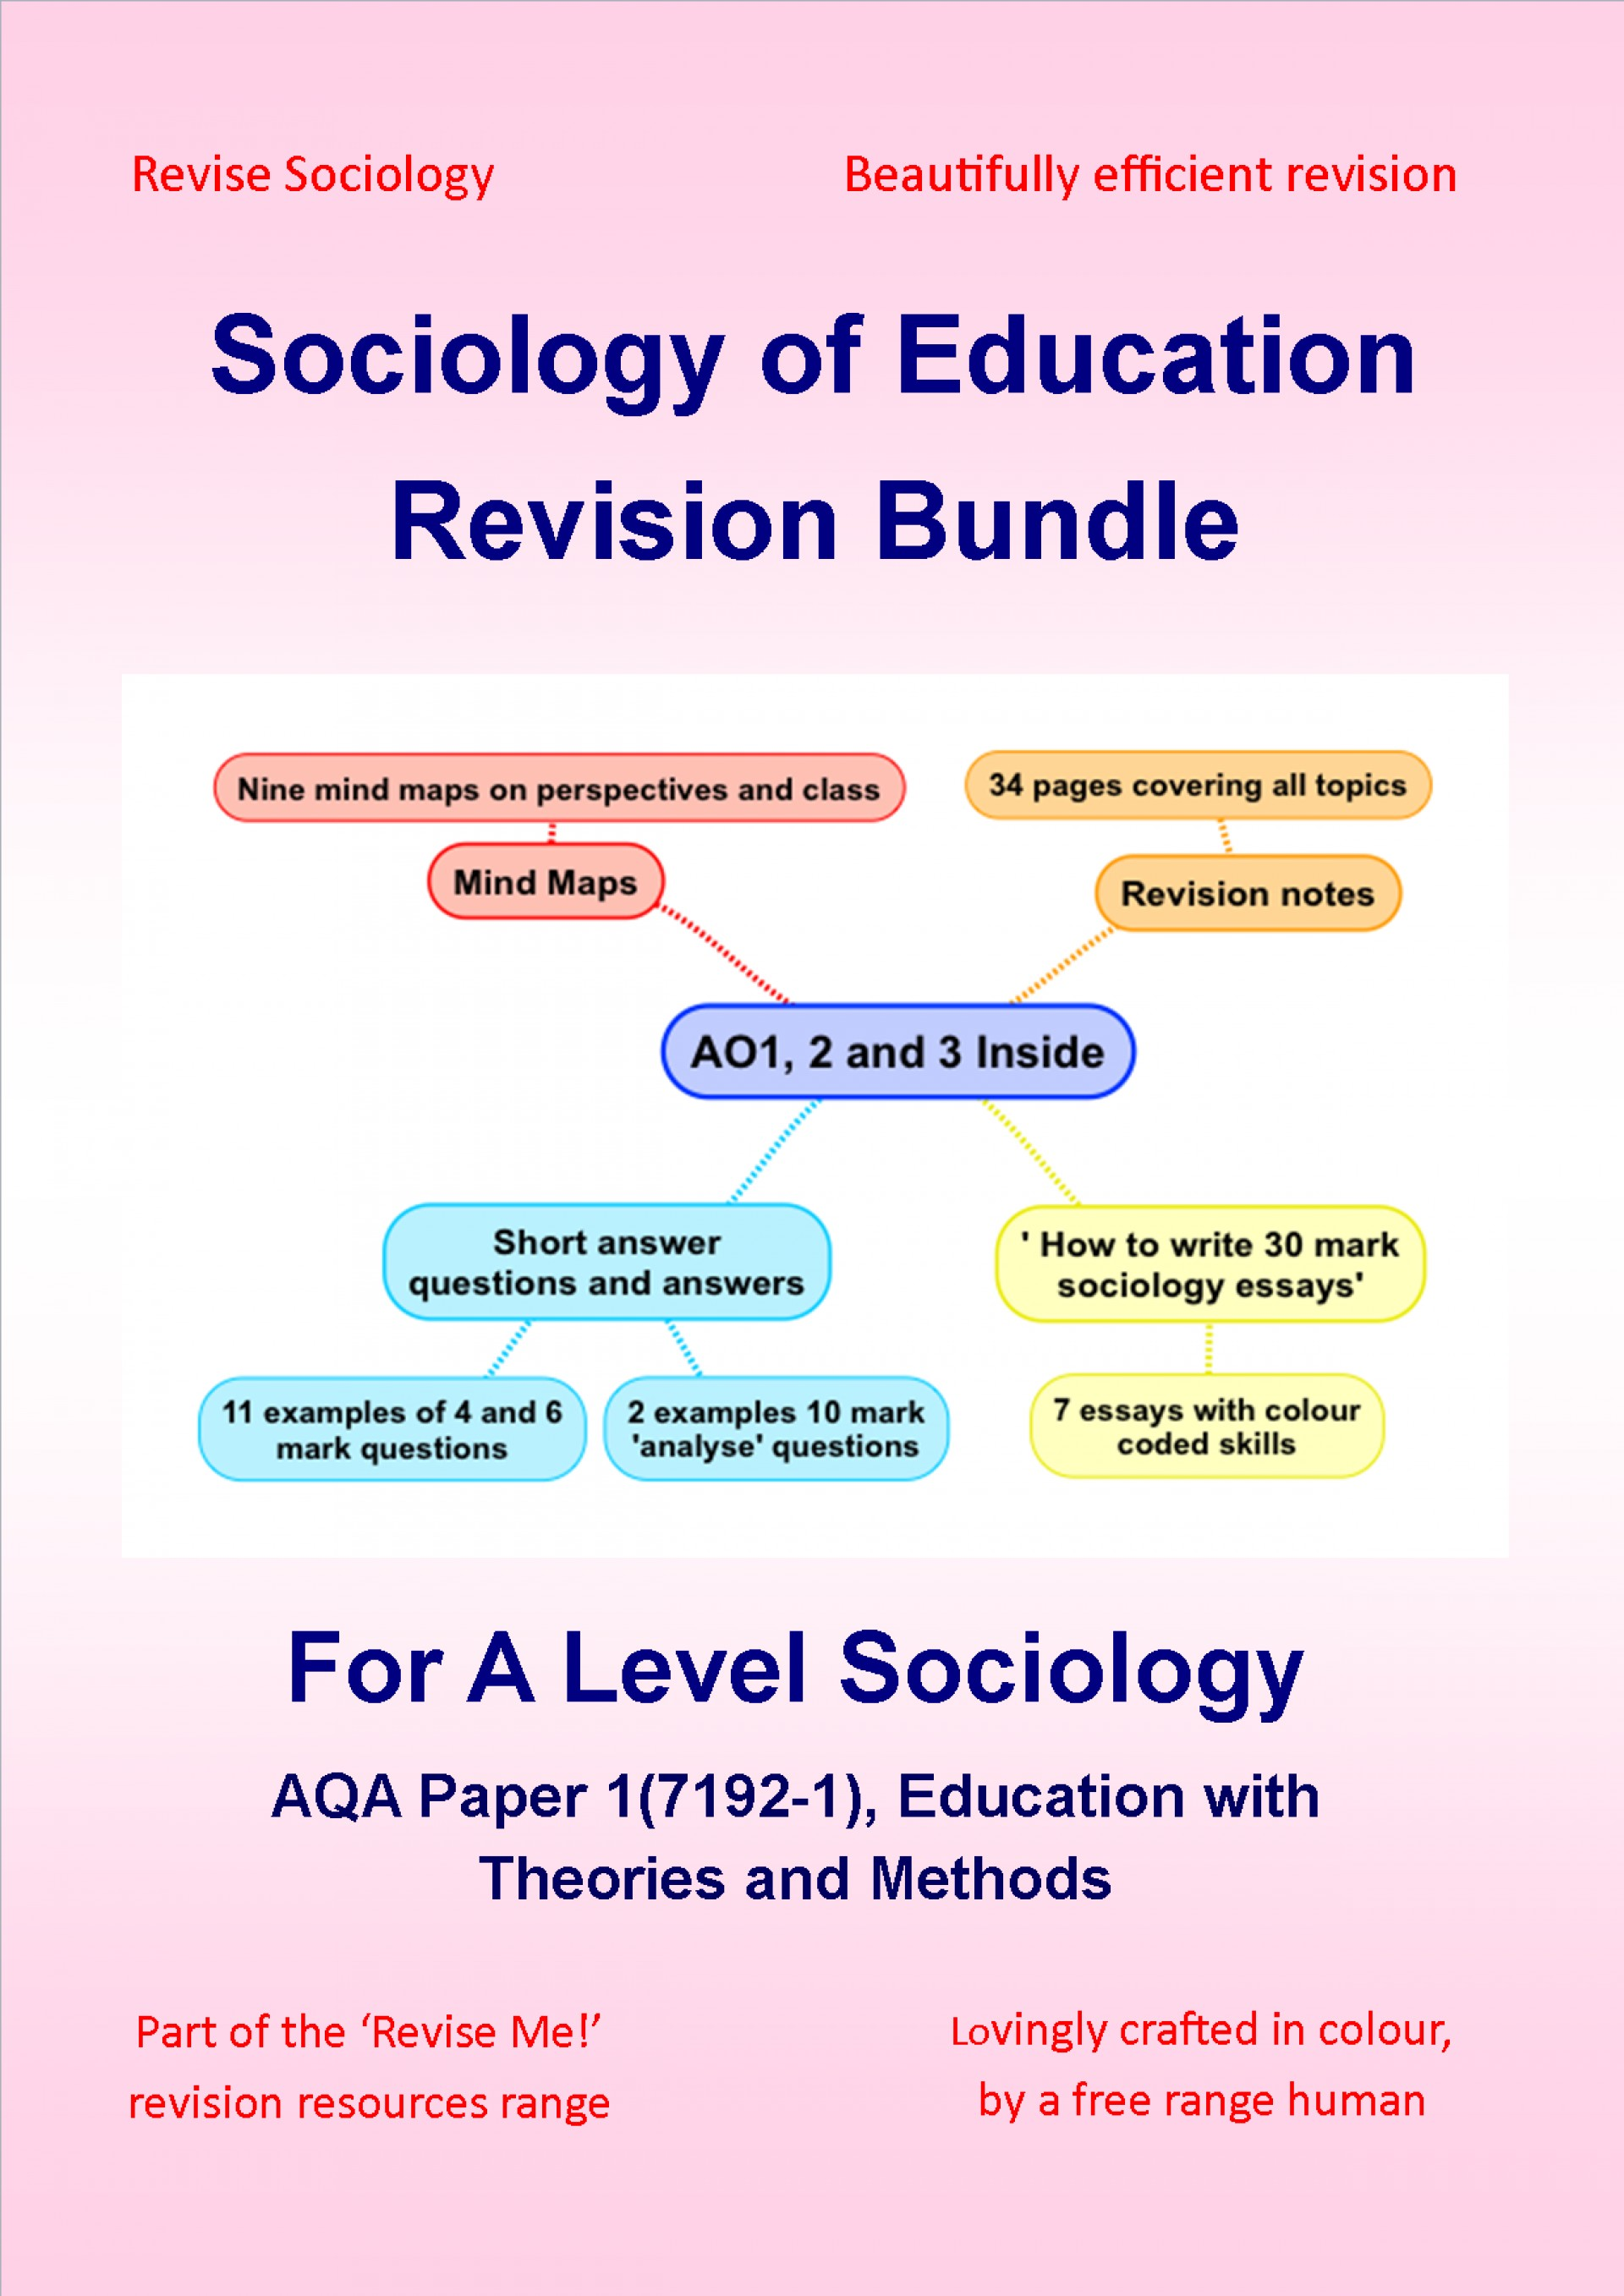 023 Education Revision Bundle Coverw212 Research Paper Best Sociology Top Topics 1920